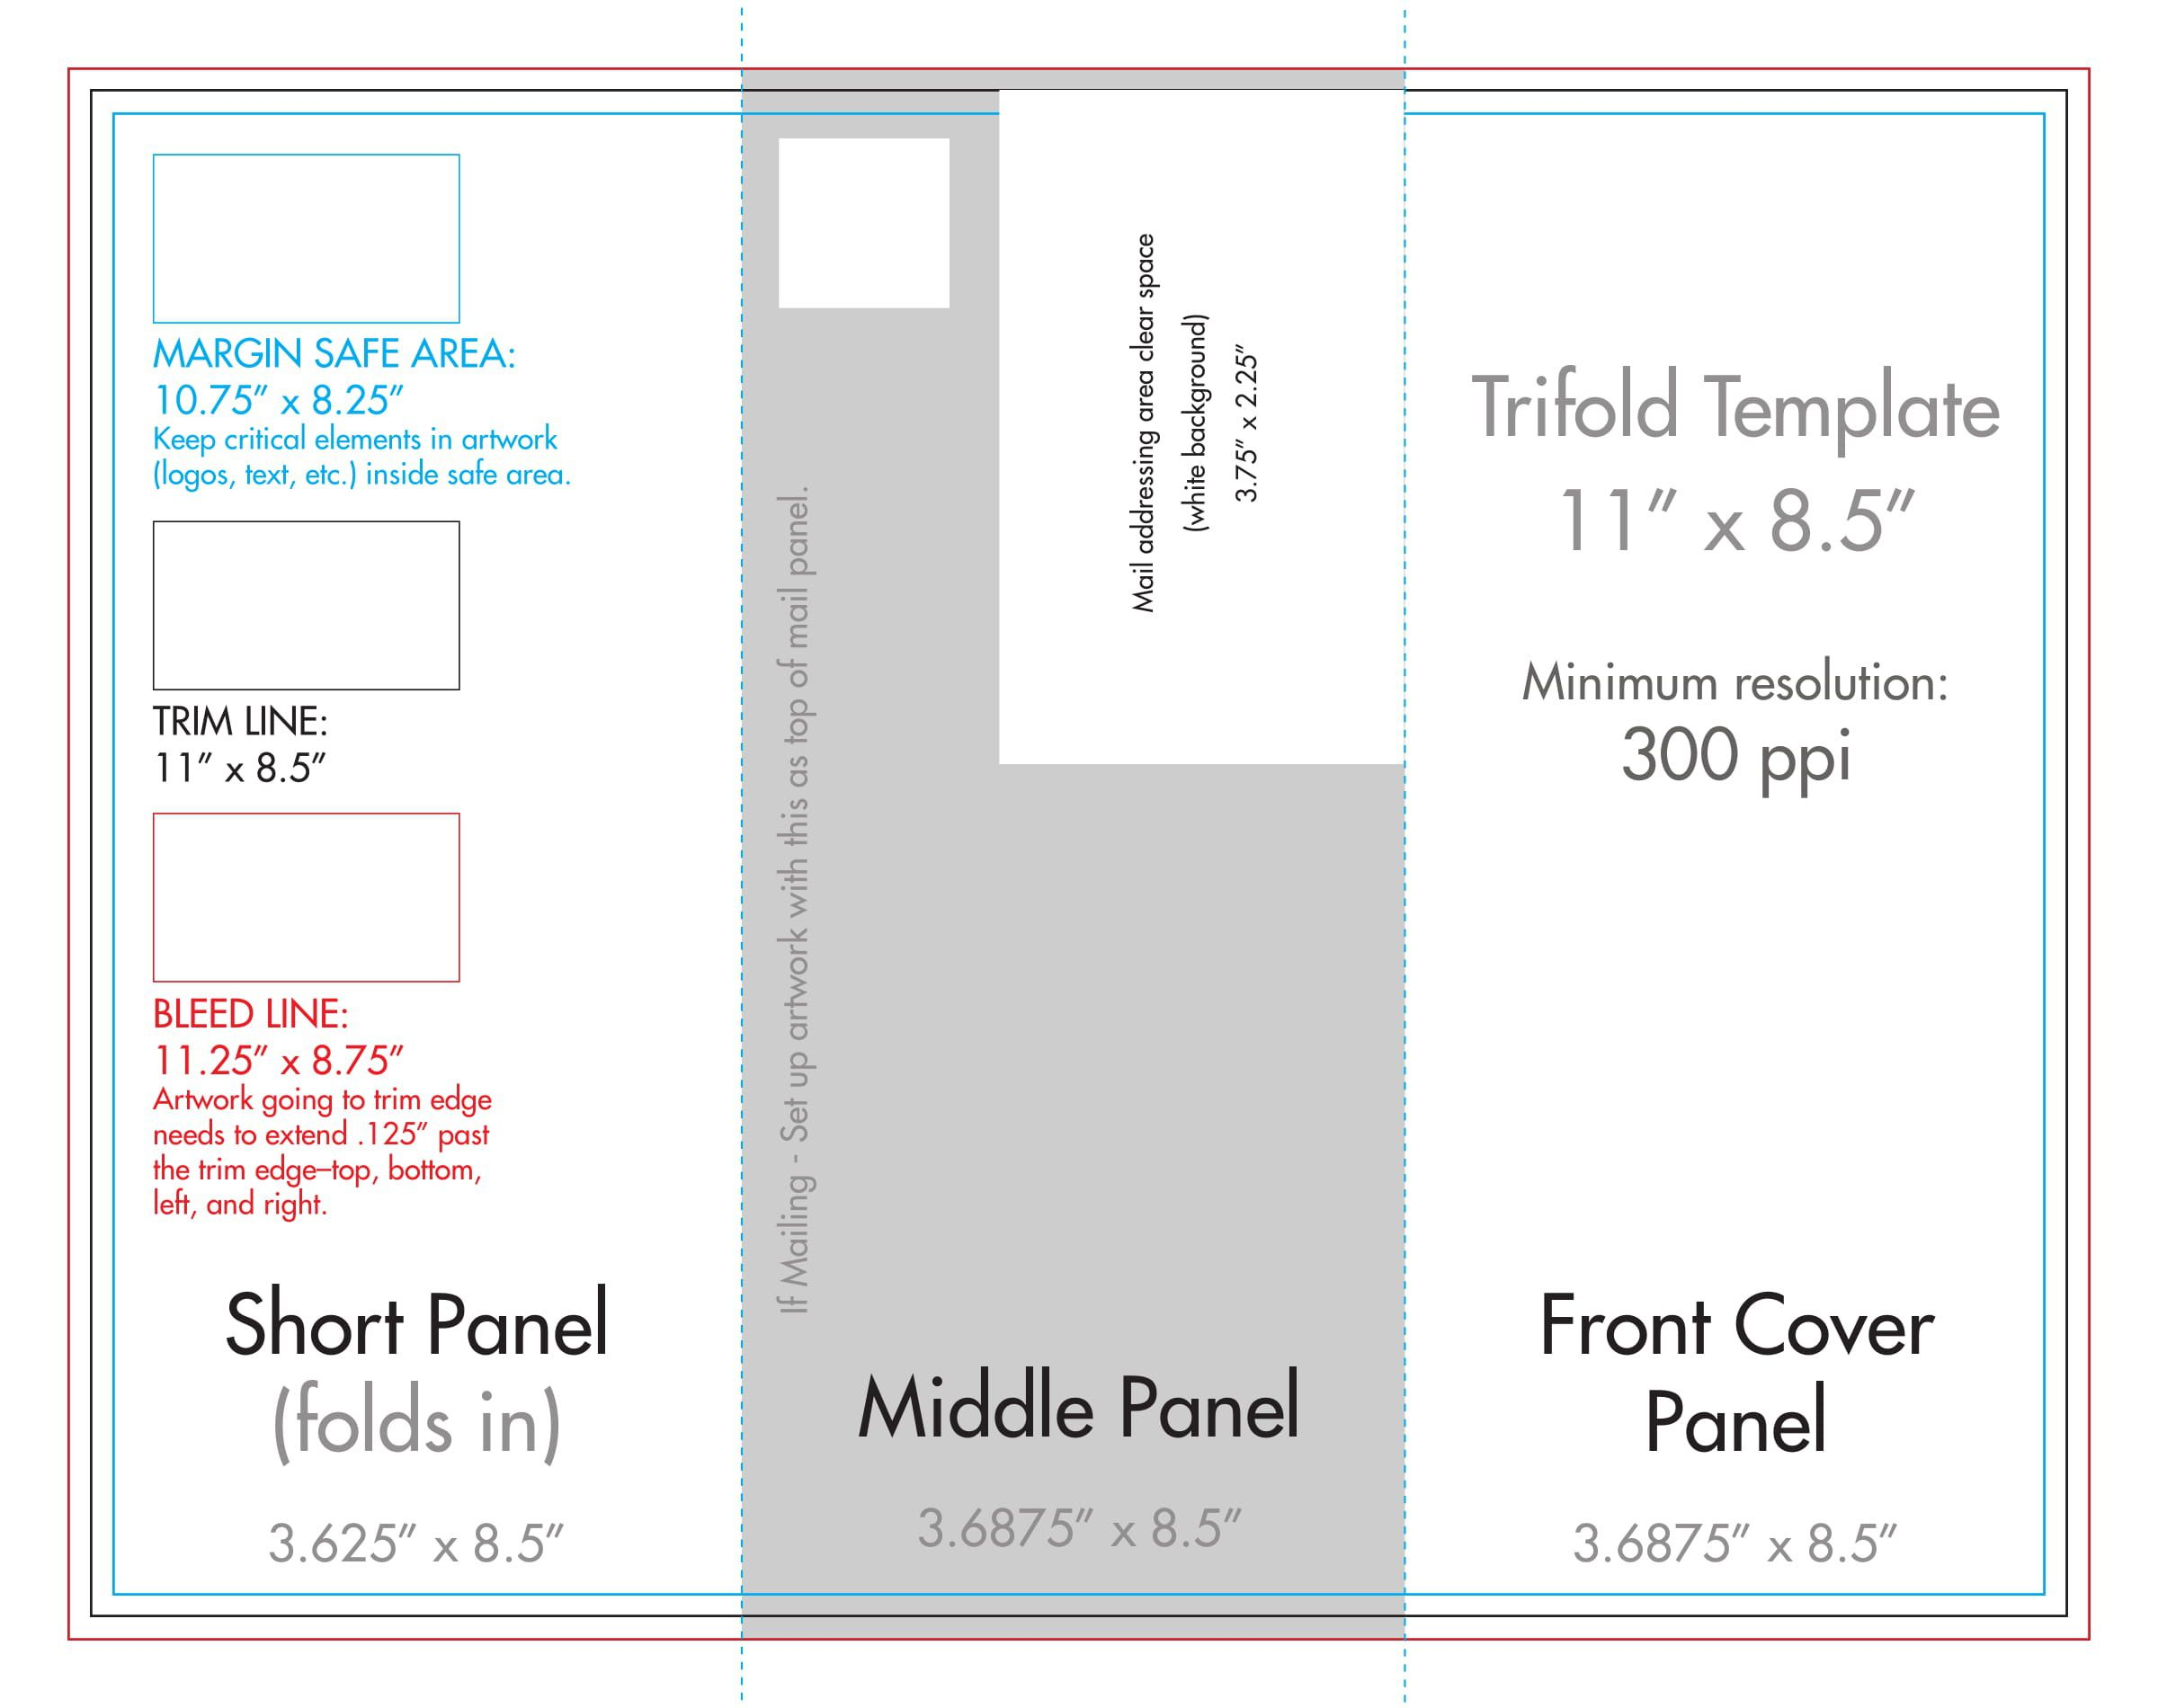 009 Fantastic Template For Trifold Brochure Sample  Tri Fold Indesign A4 Free In Word DownloadFull